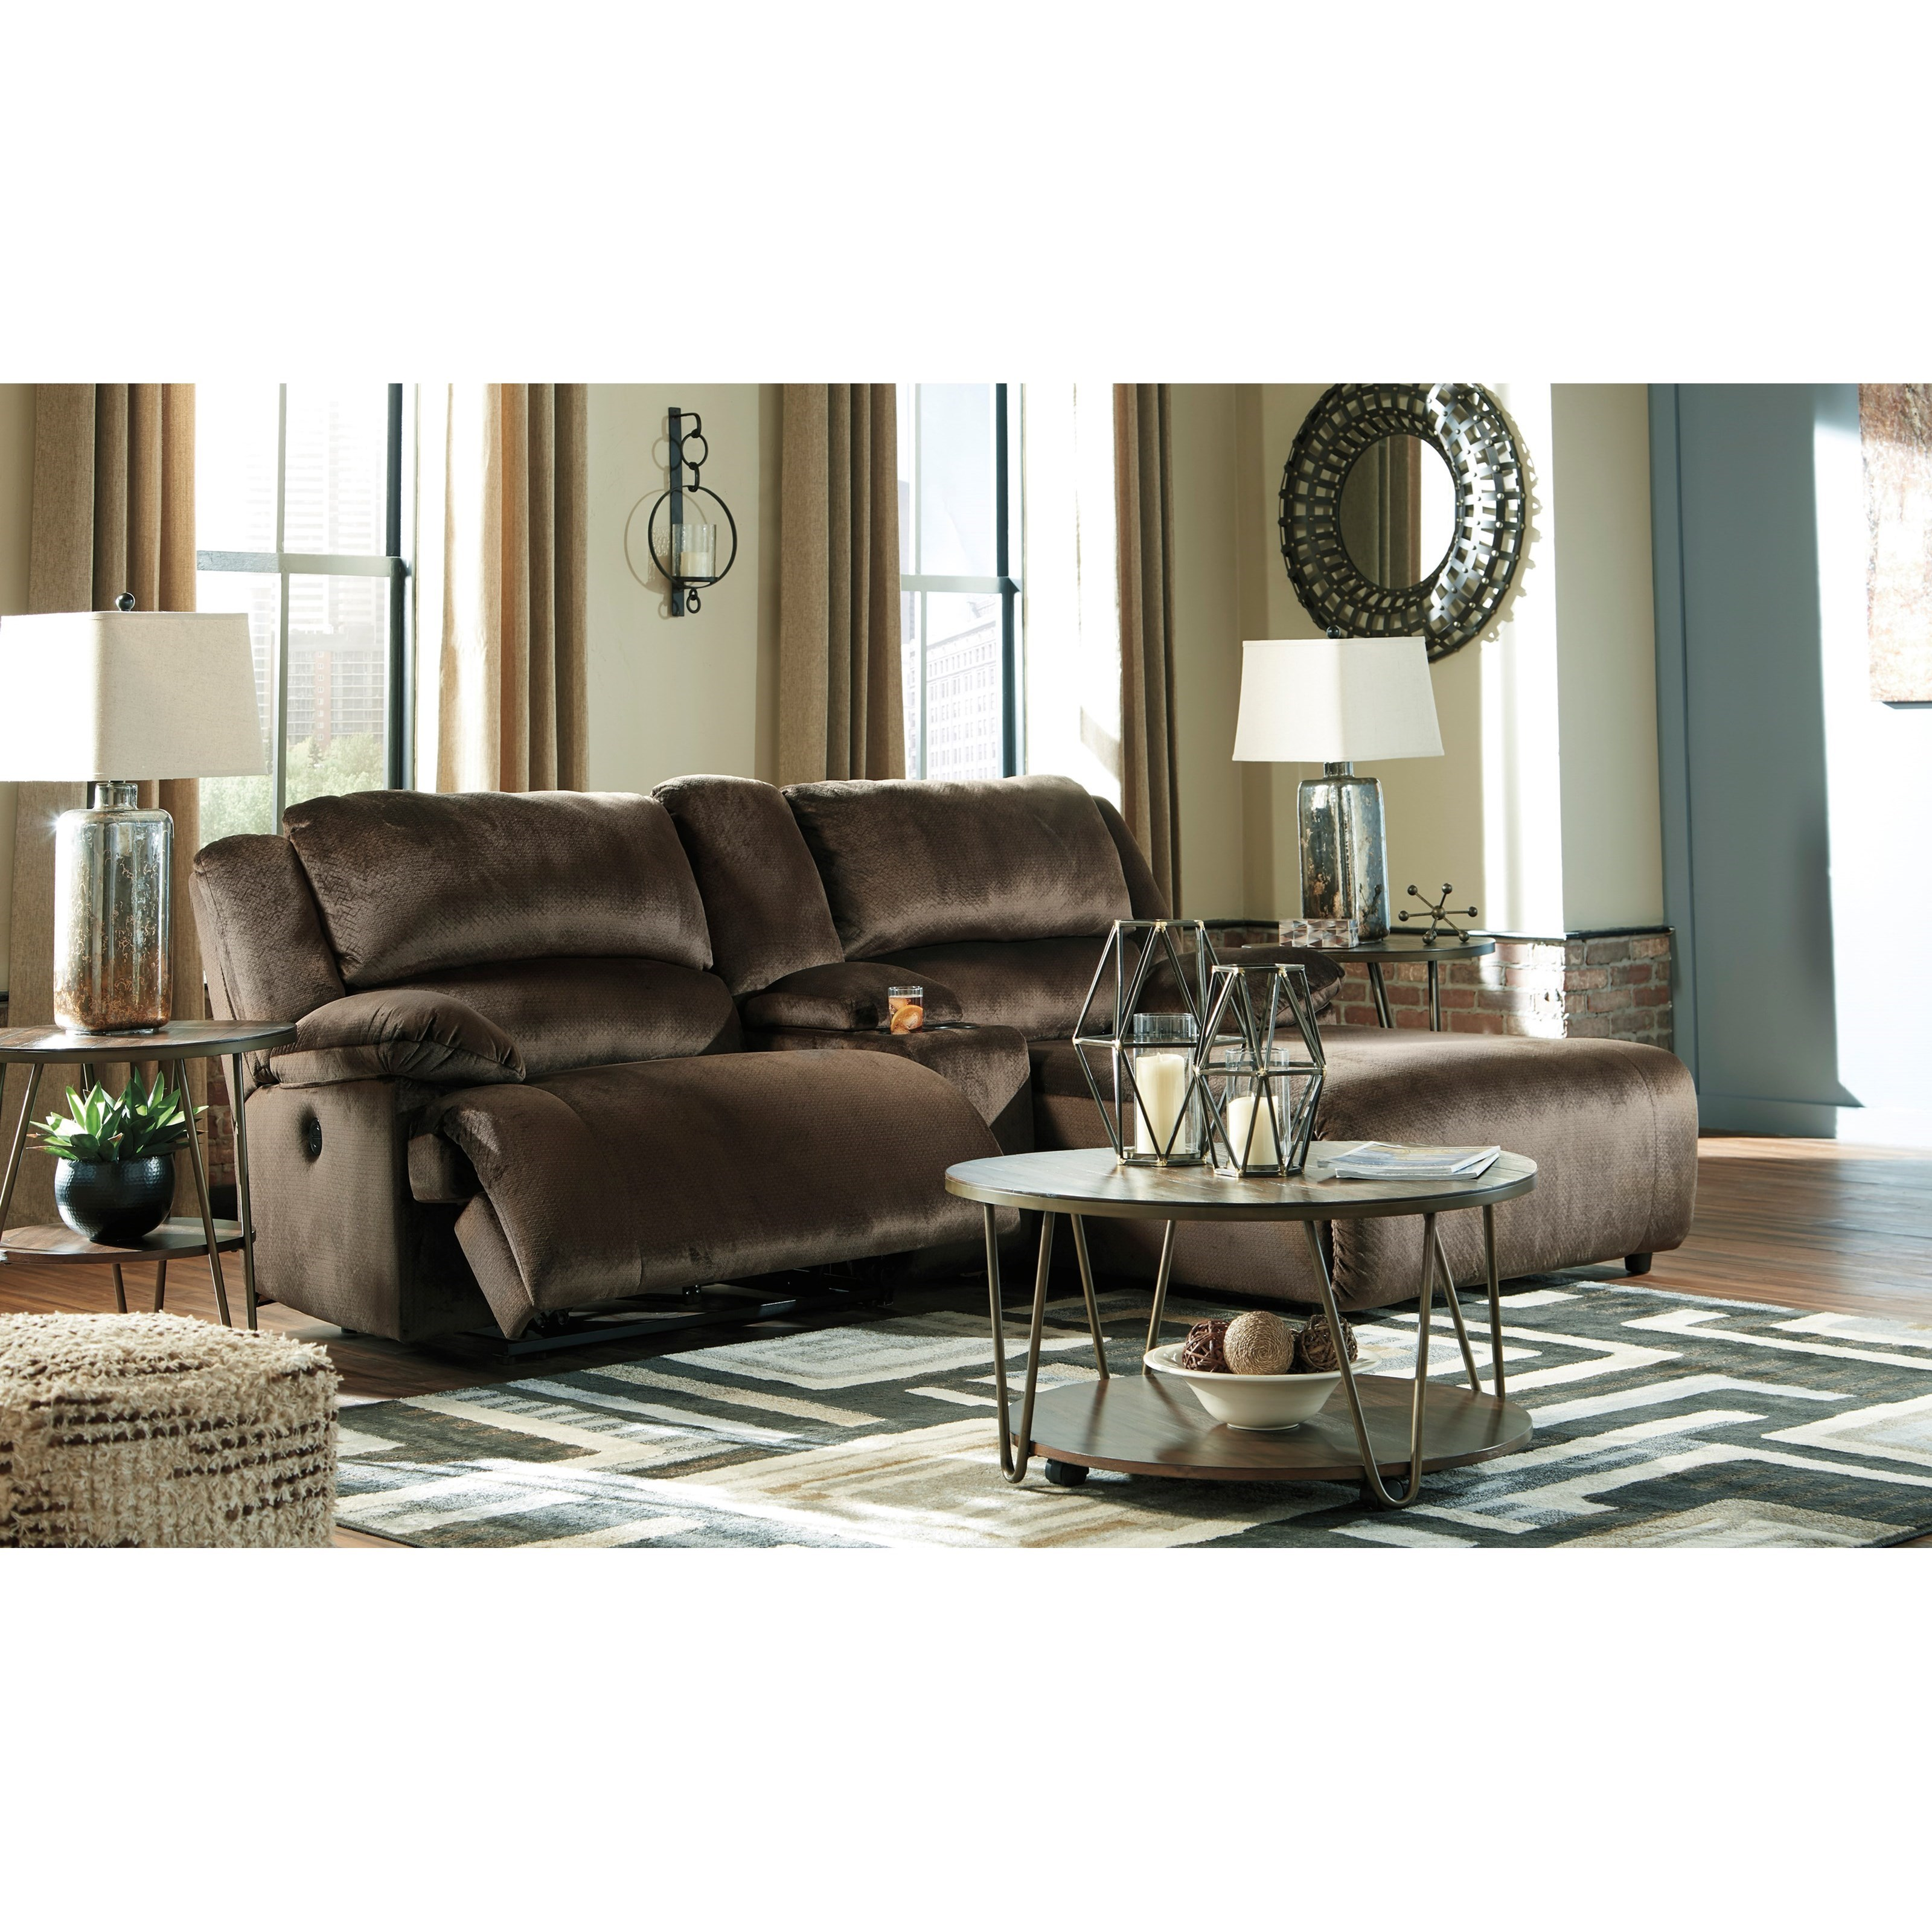 Clonmel Reclining Sectional w/ Chaise & Console by Ashley (Signature Design) at Johnny Janosik